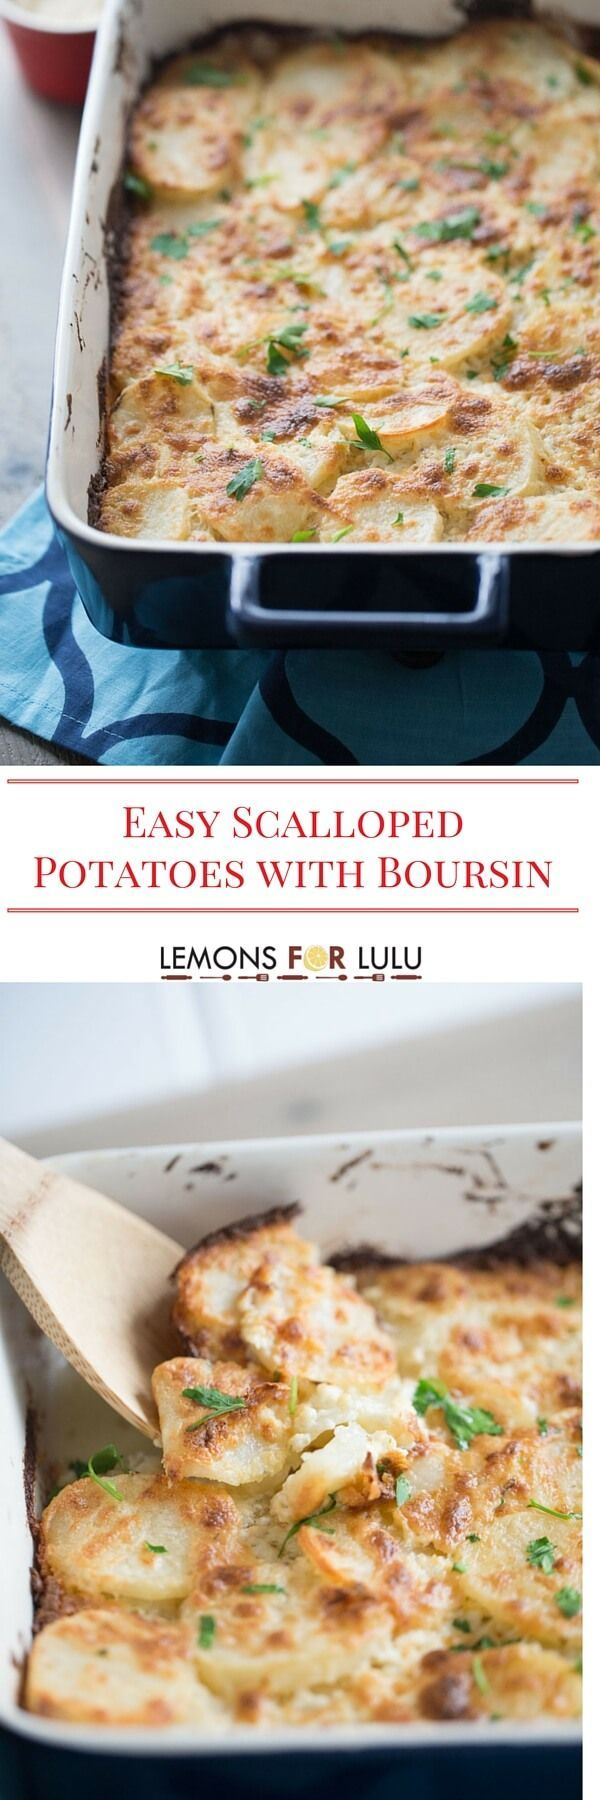 You can't go wrong with potatoes as a side dish, but this easy scalloped potato recipe is exceptionally delicious!  Thinly sliced potatoes are covered in a herb flavored cheese sauce that is so rich and creamy!